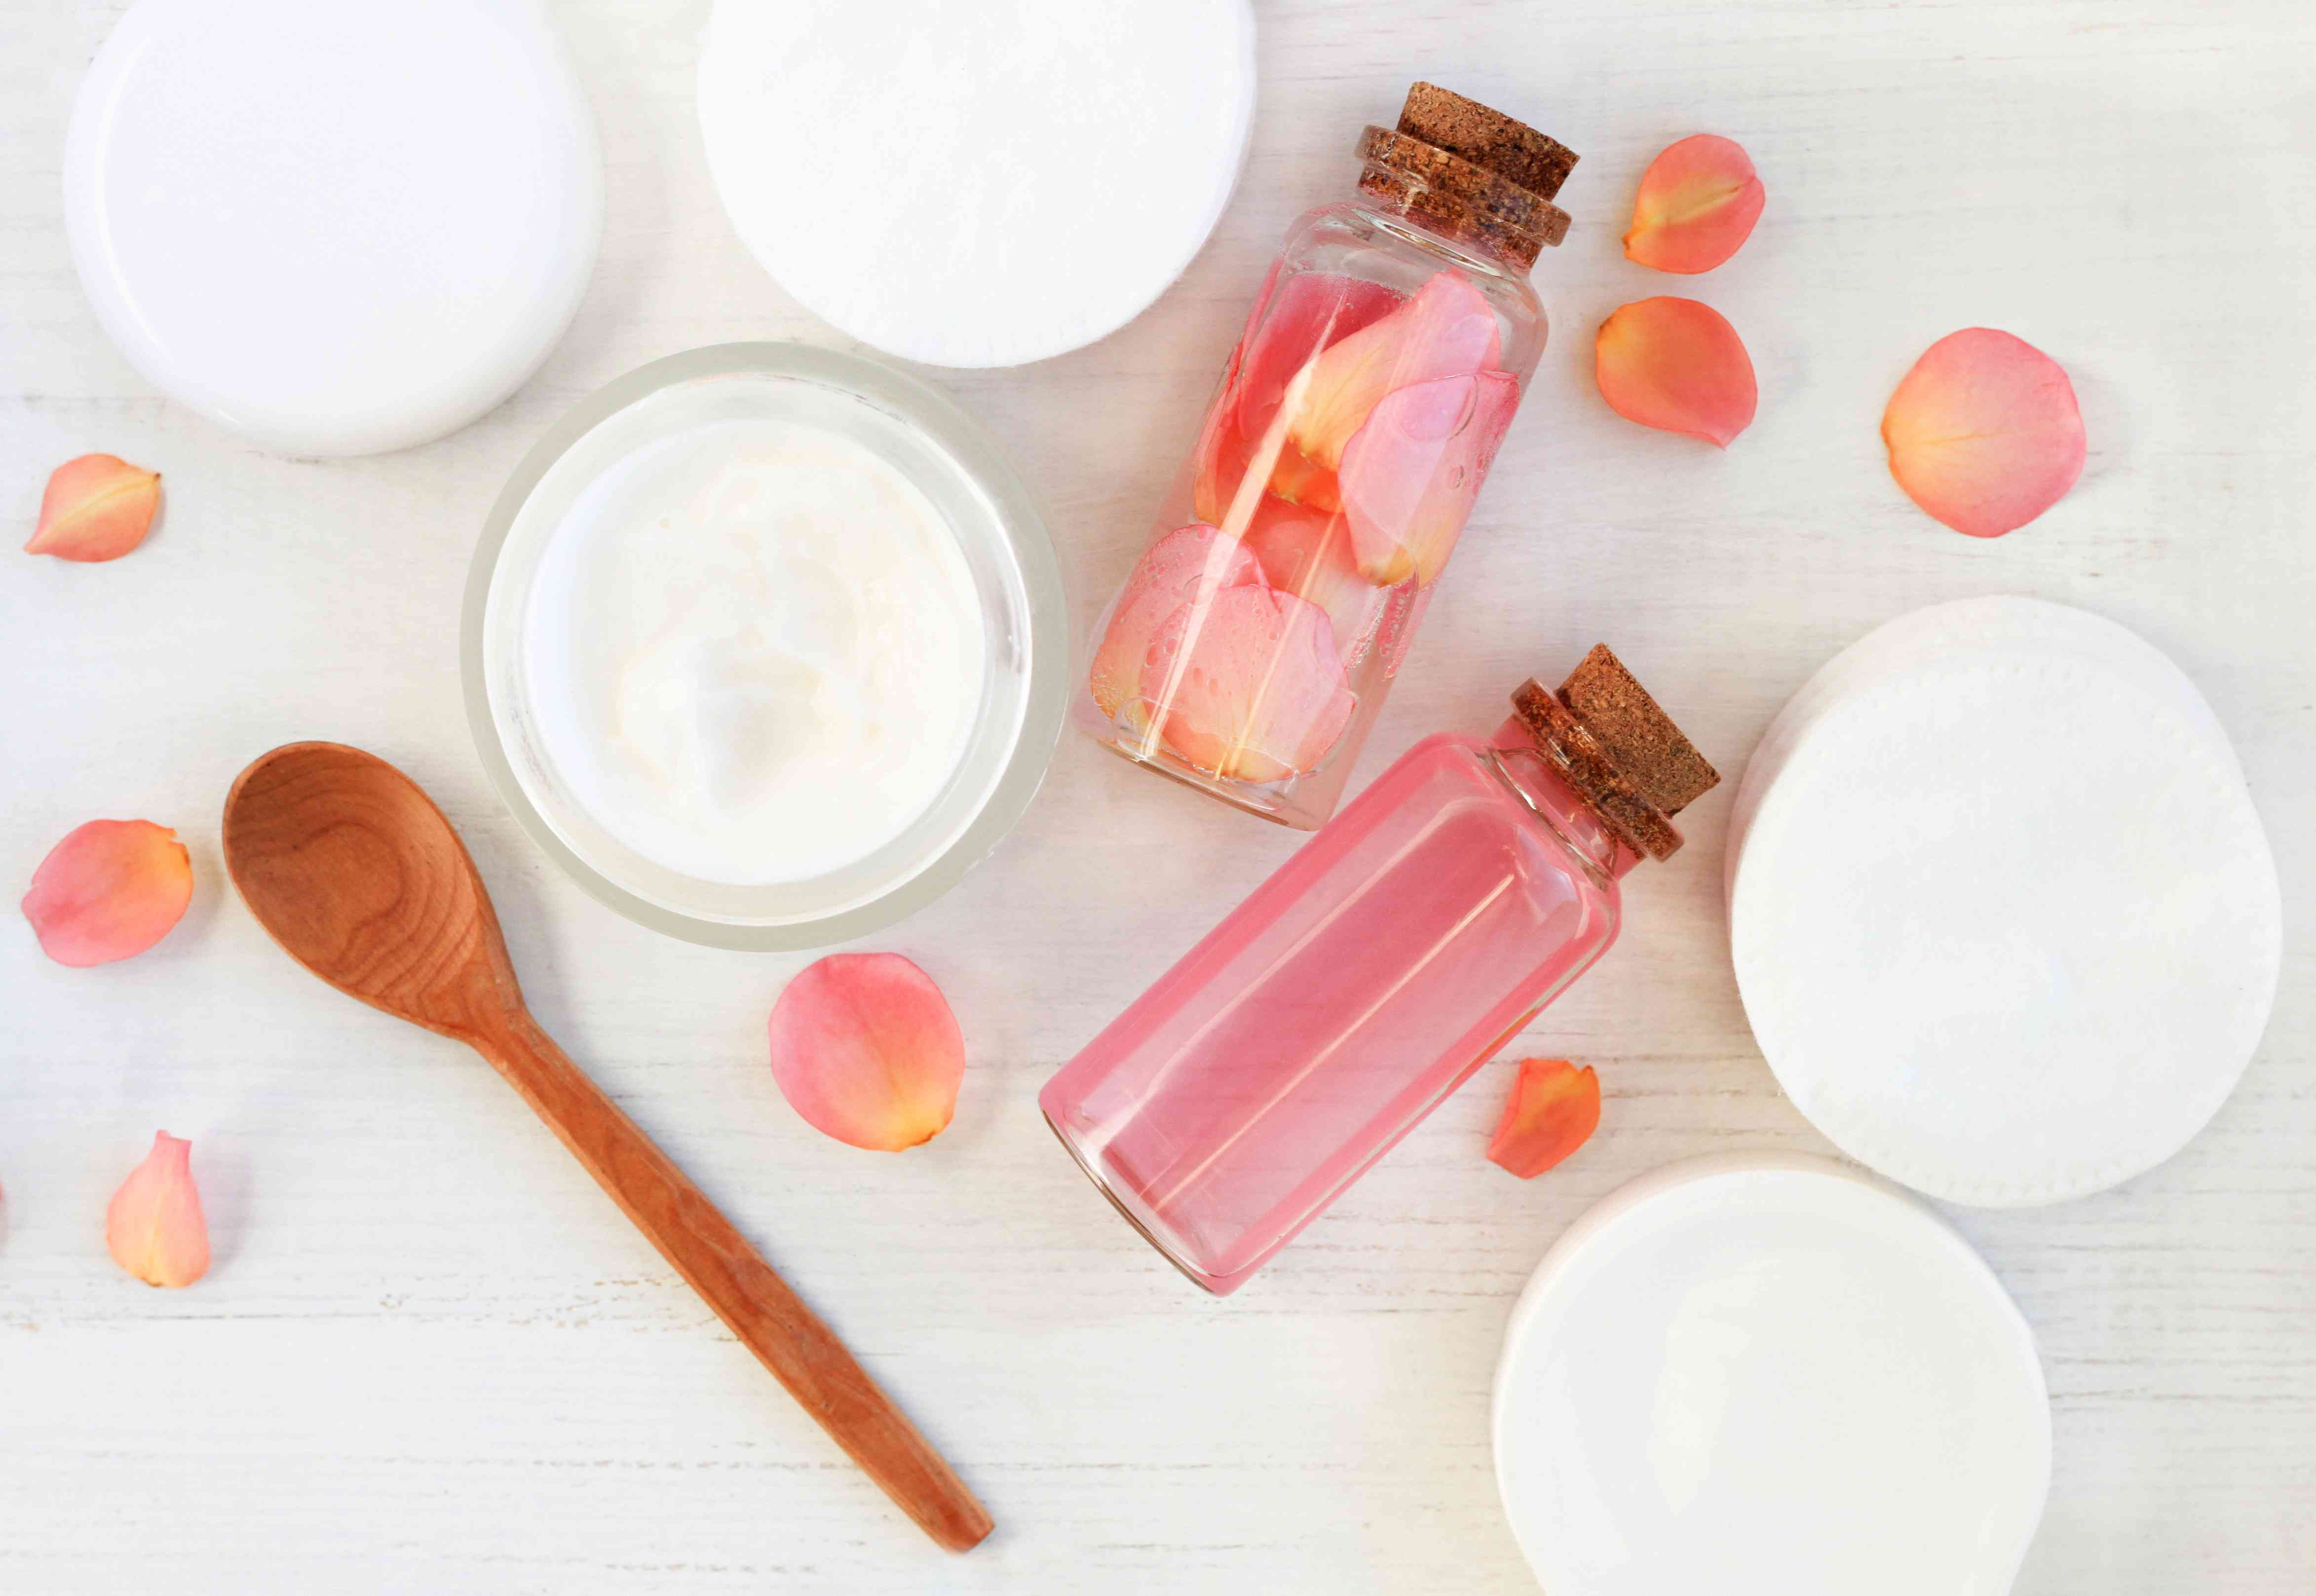 Two bottles of rosewater are lying on a pale wooden surface, with a wooden spoon, five bowls of white cream and some rose petals around them